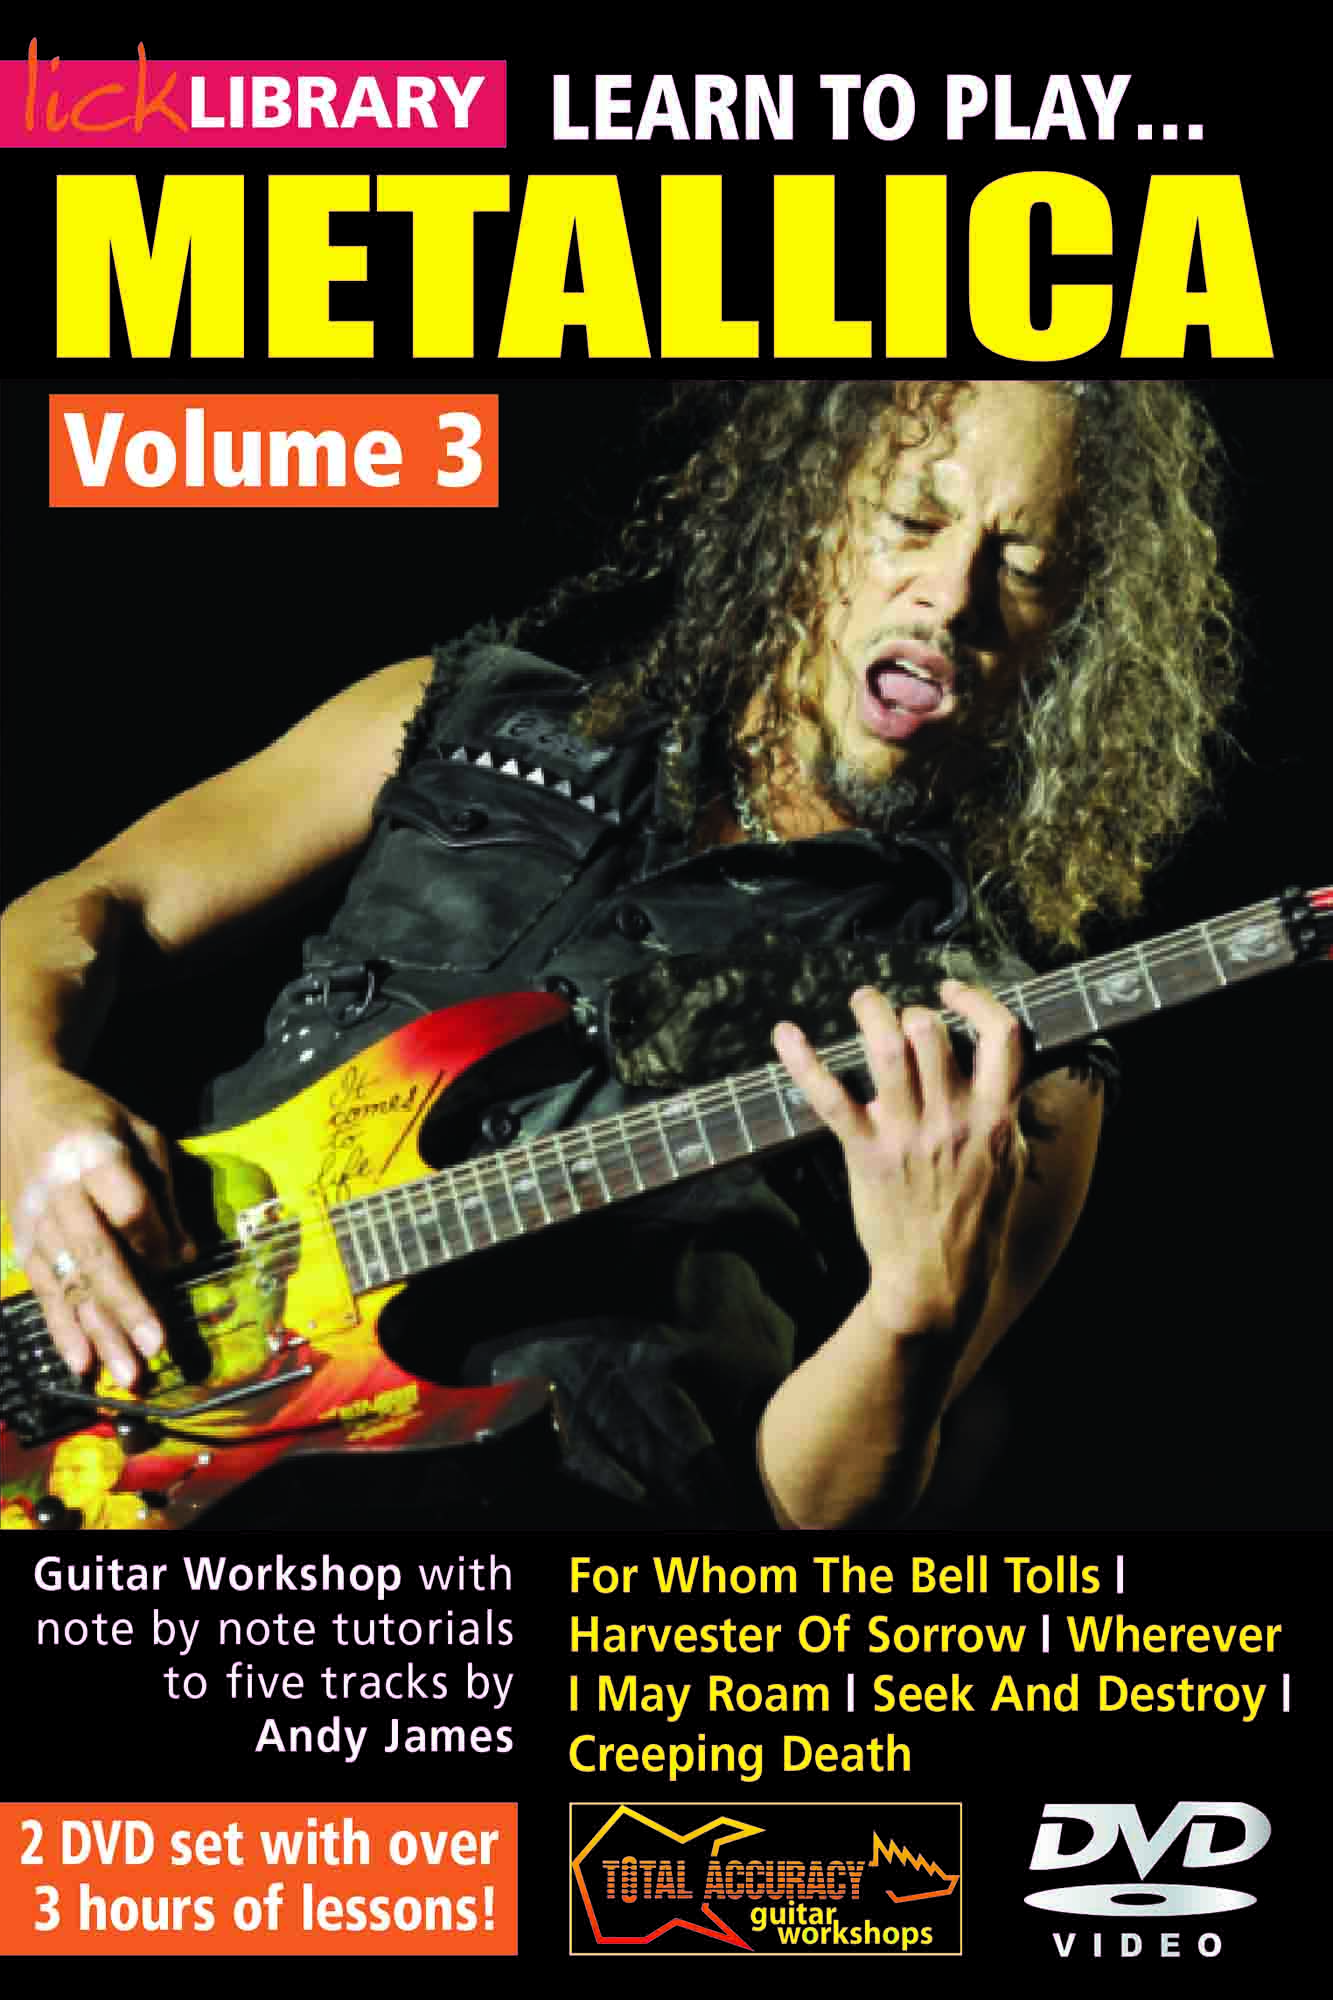 Learn To Play Metallica Volume 3